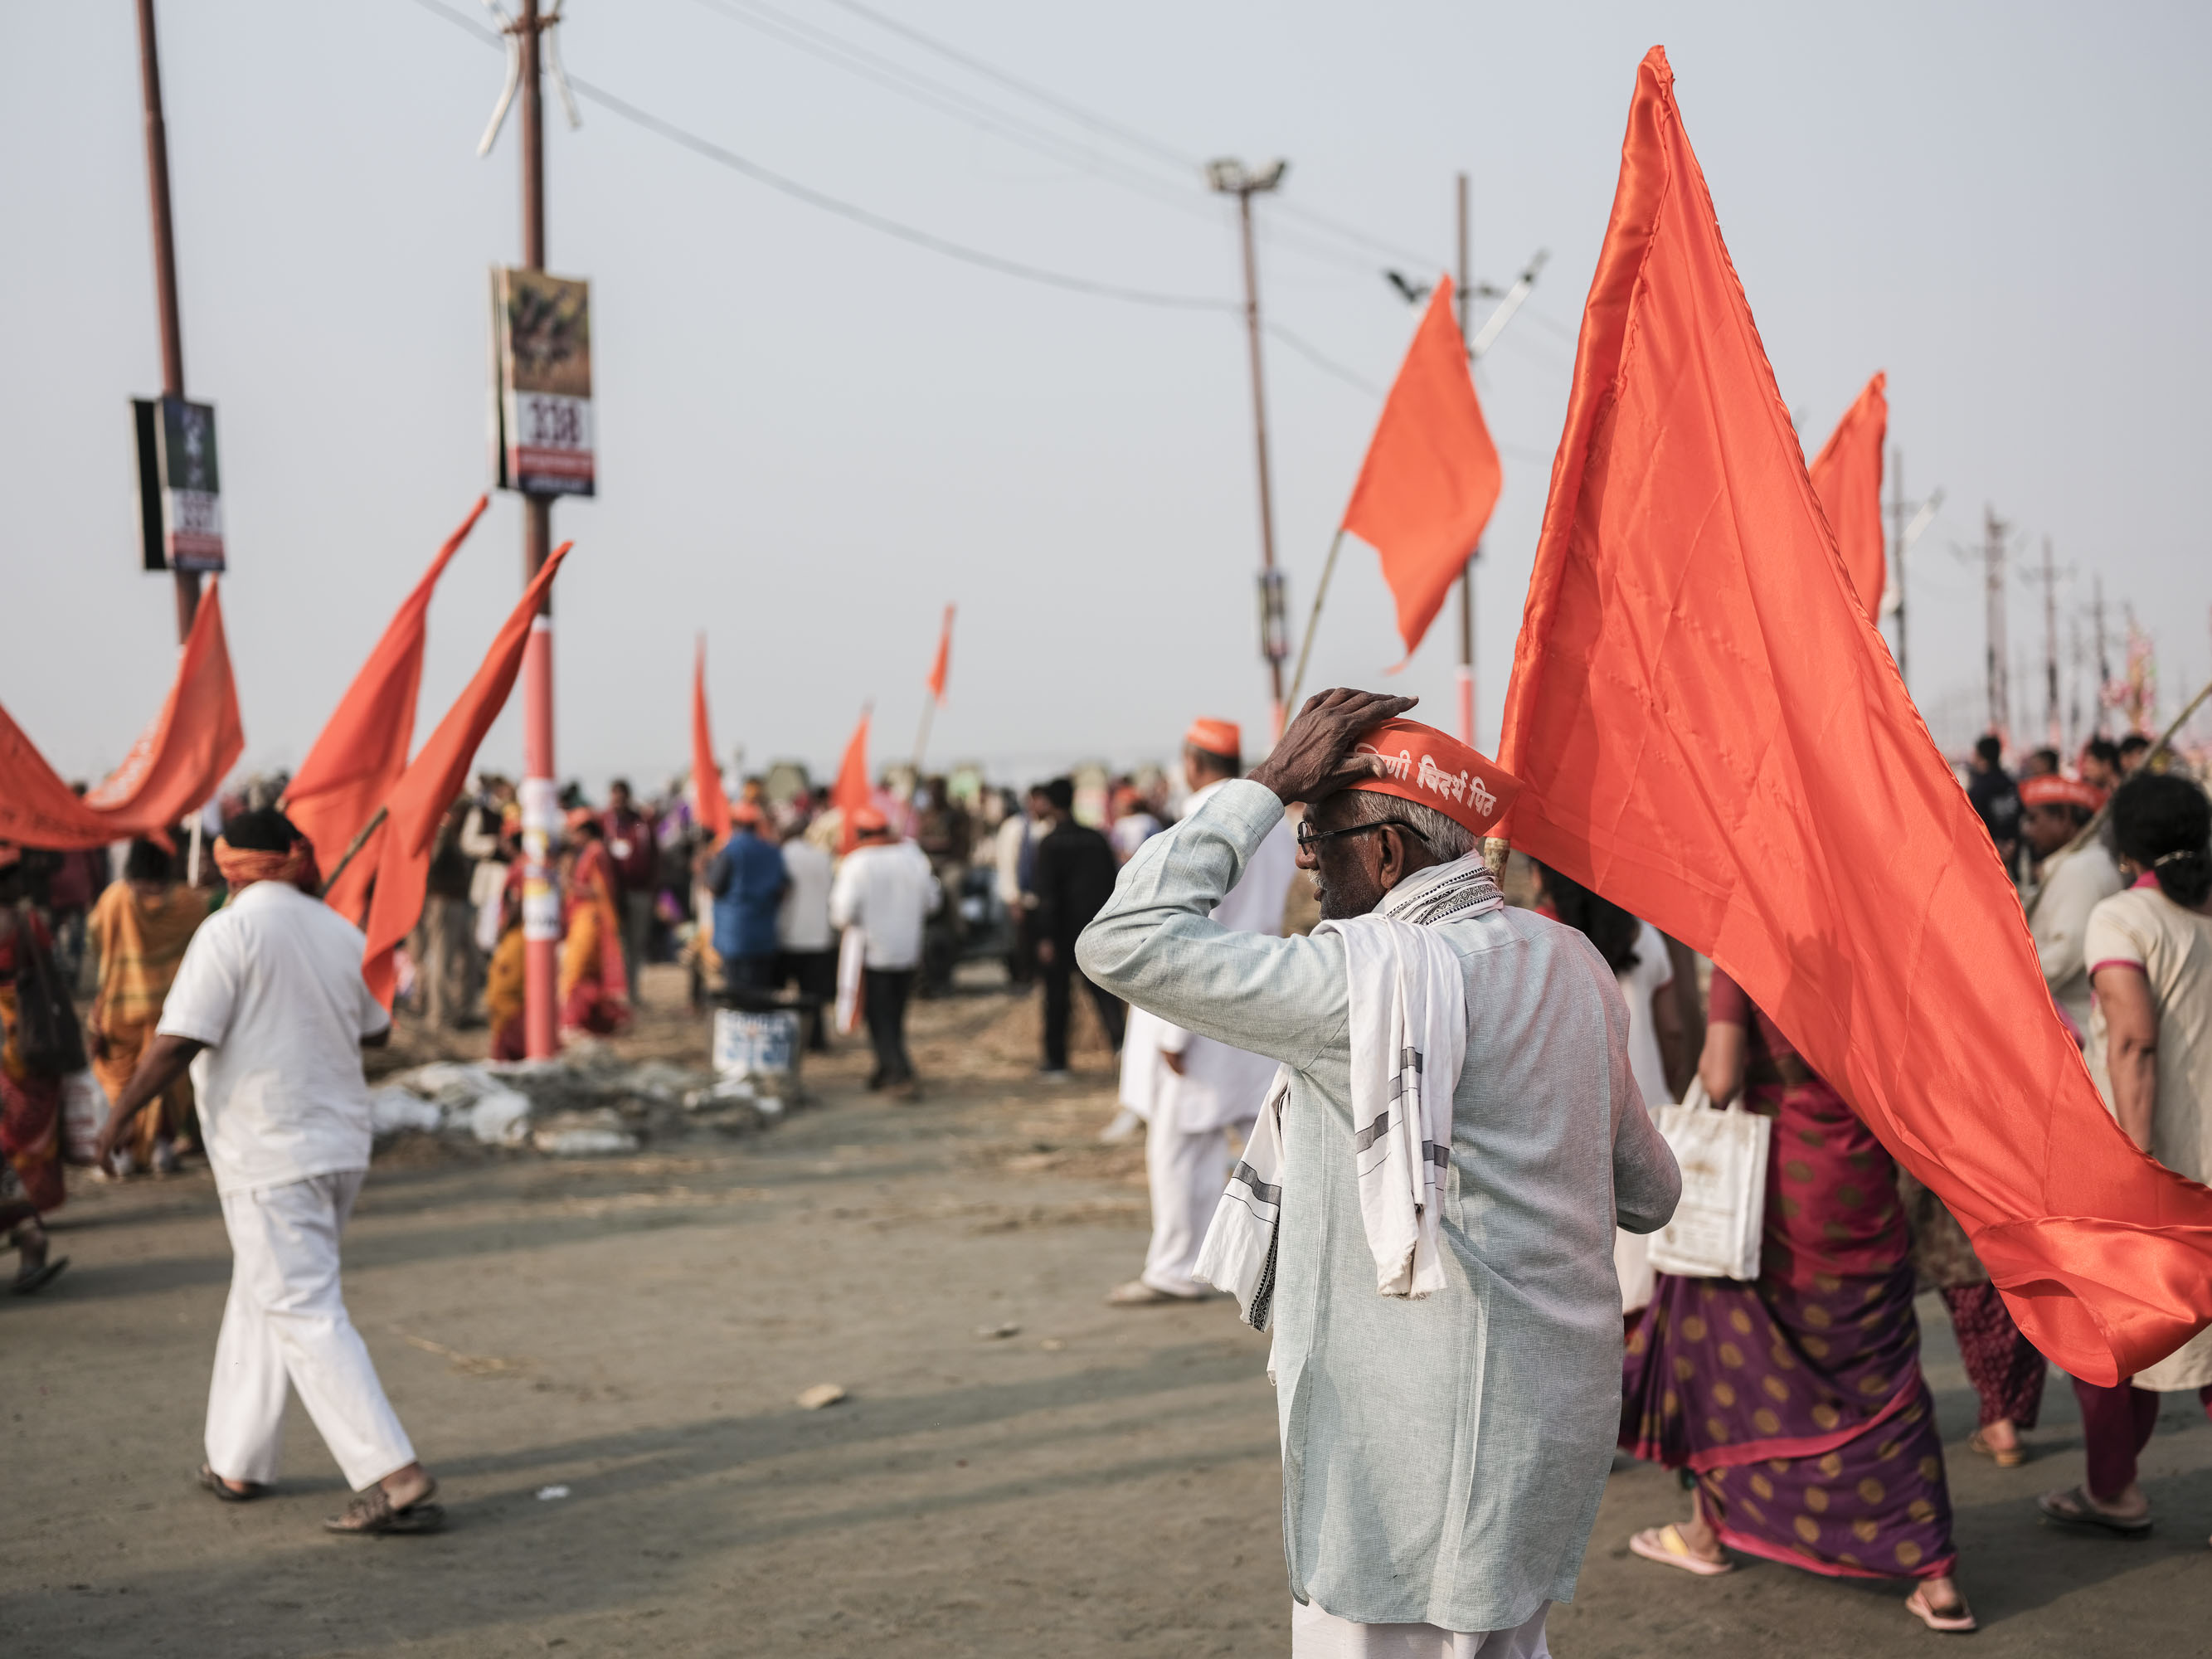 orange flag pilgrims Kumbh mela 2019 India Allahabad Prayagraj Ardh hindu religious Festival event rivers photographer jose jeuland photography